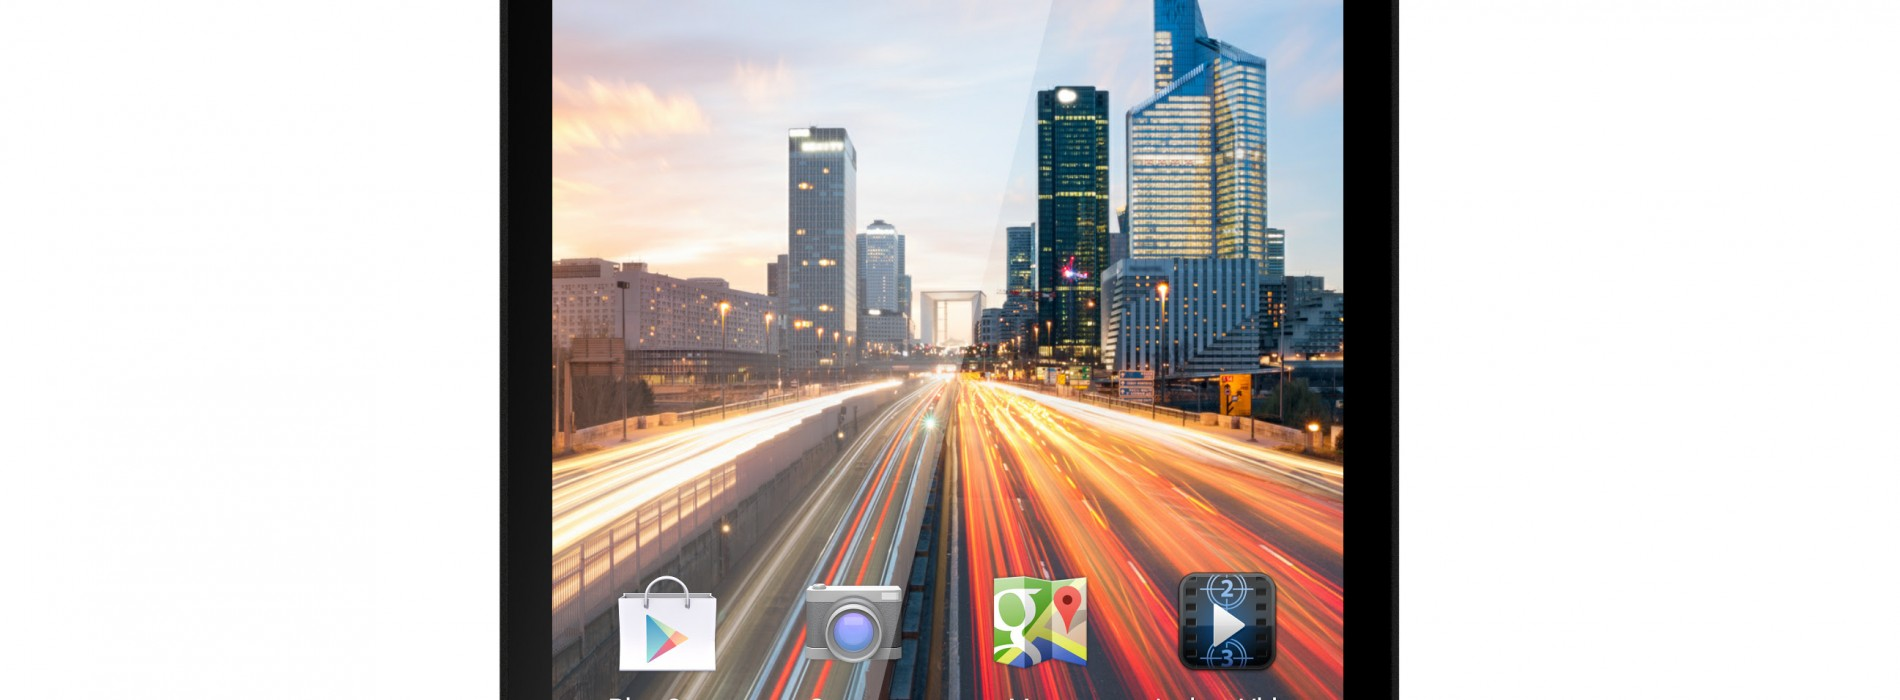 ARCHOS to show off two new 4G phones at CES